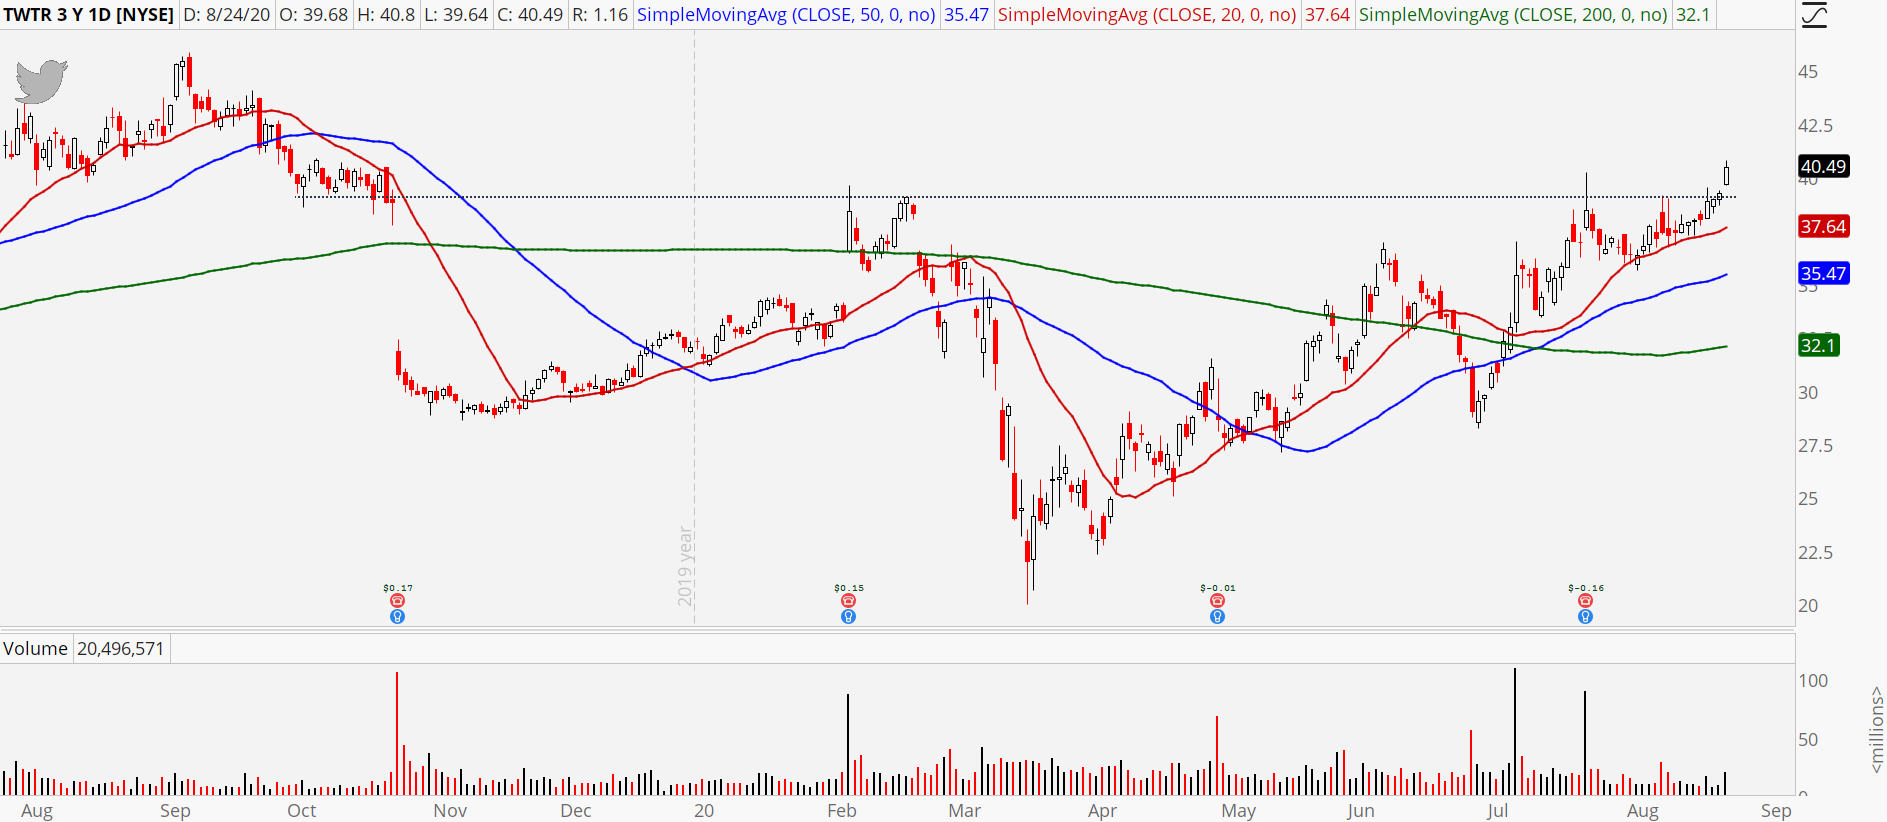 Twitter (TWTR) stock daily chart showing breakout details